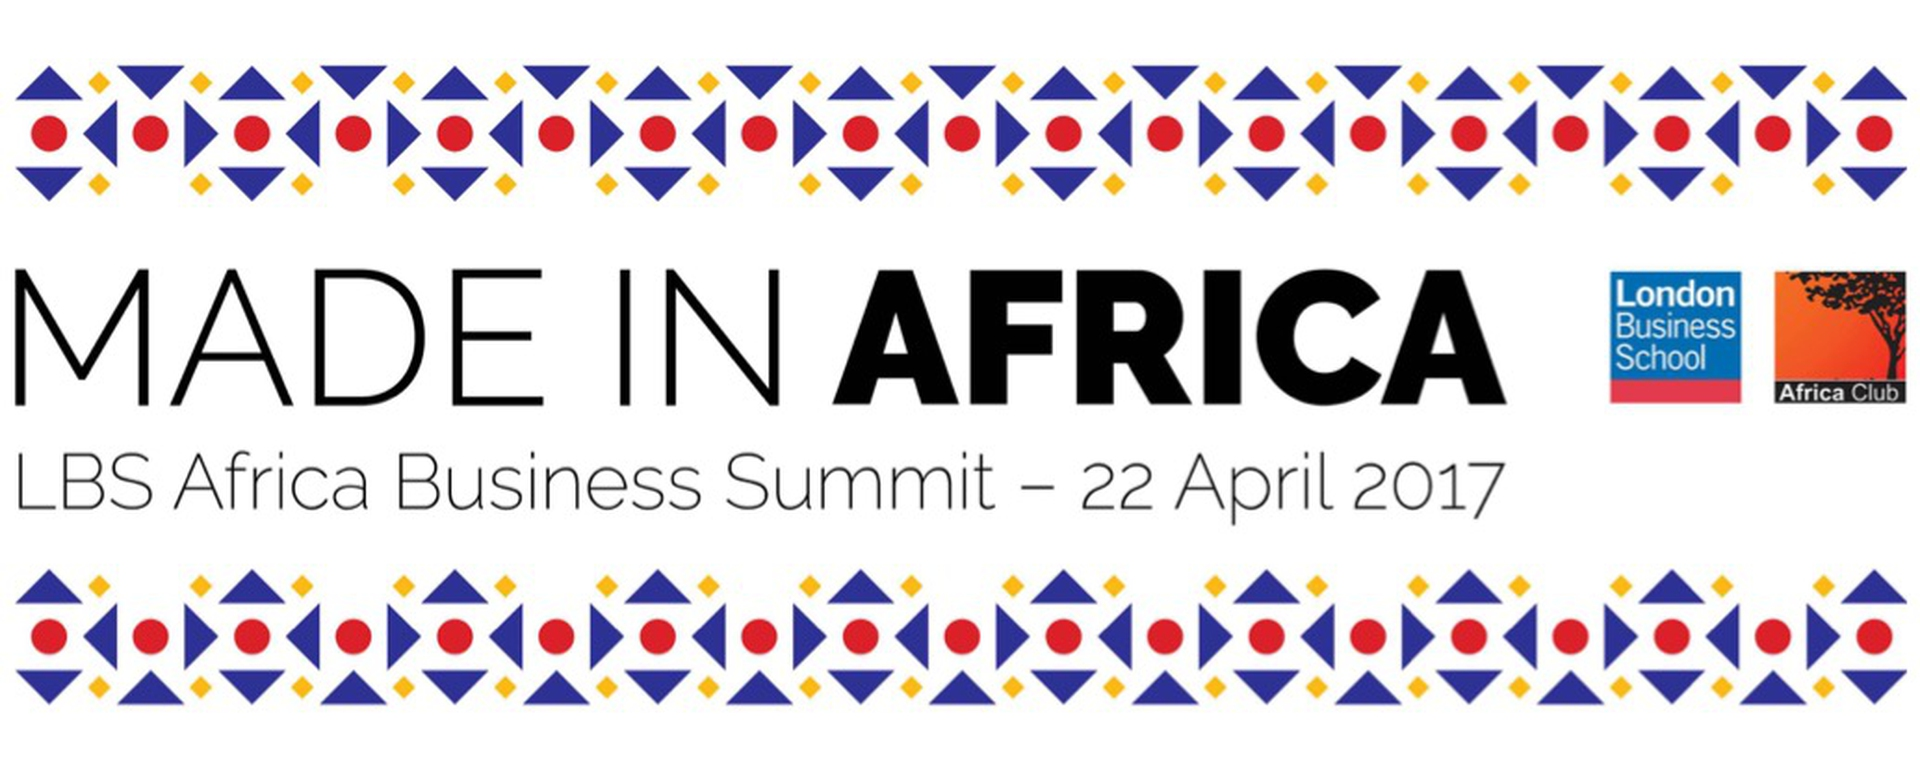 London Business School Africa Club - LBS Africa Business Summit Movemeback African event cover image